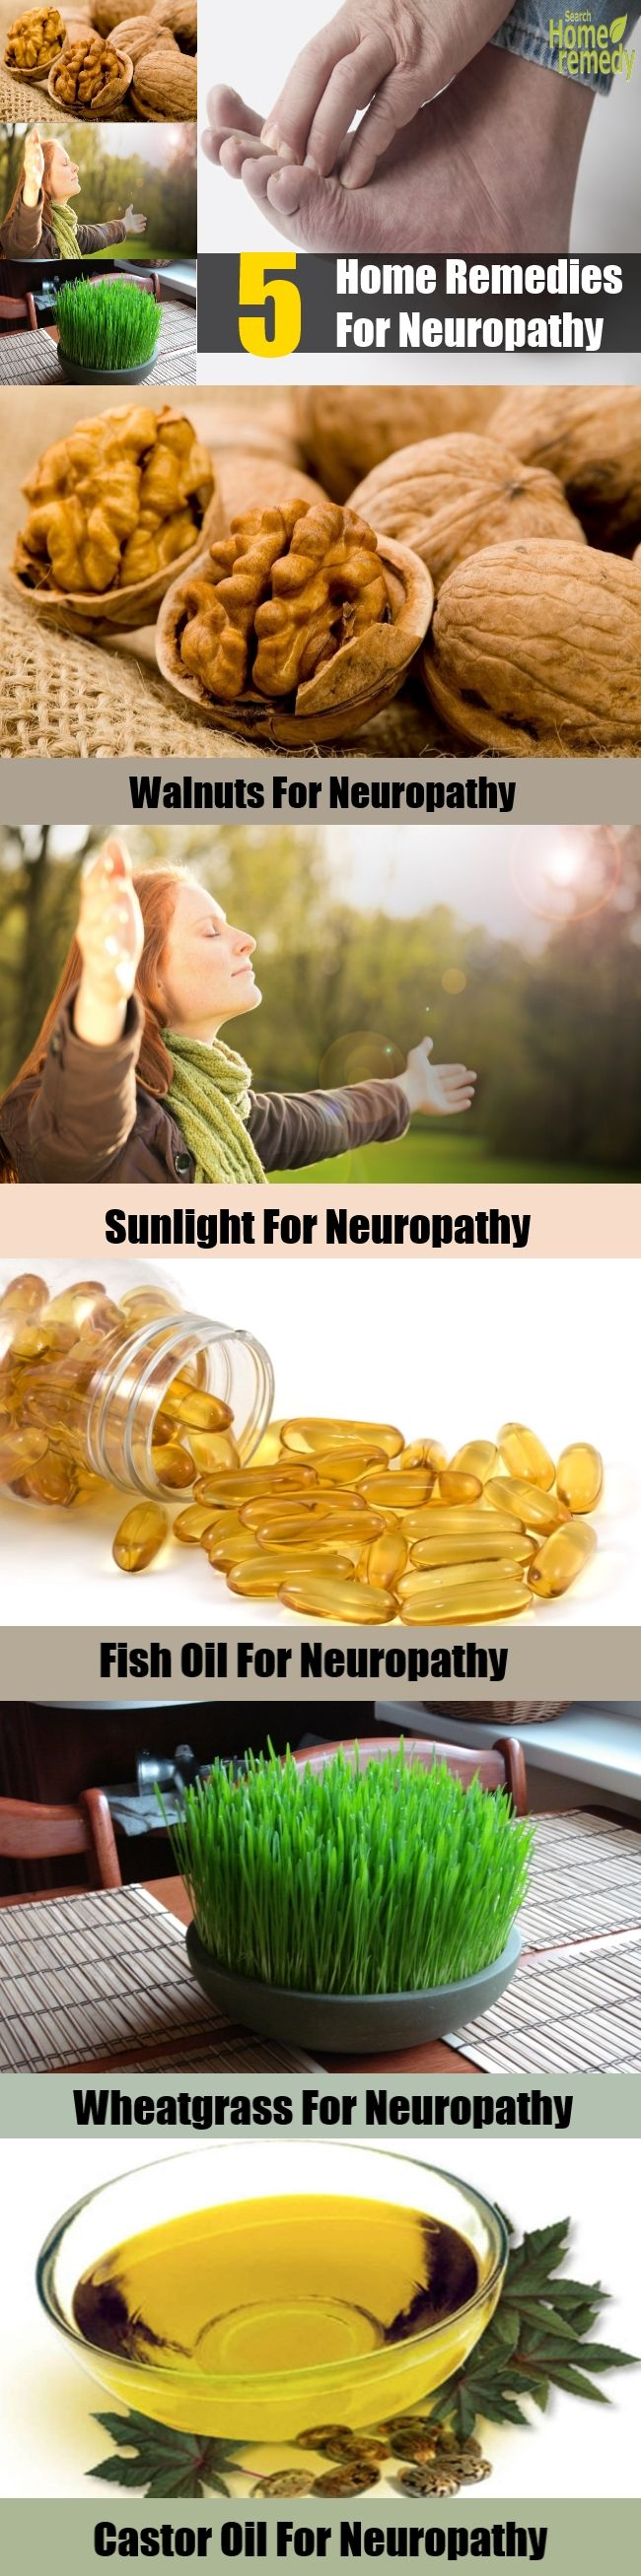 5 Effective Home Remedies For Neuropathy